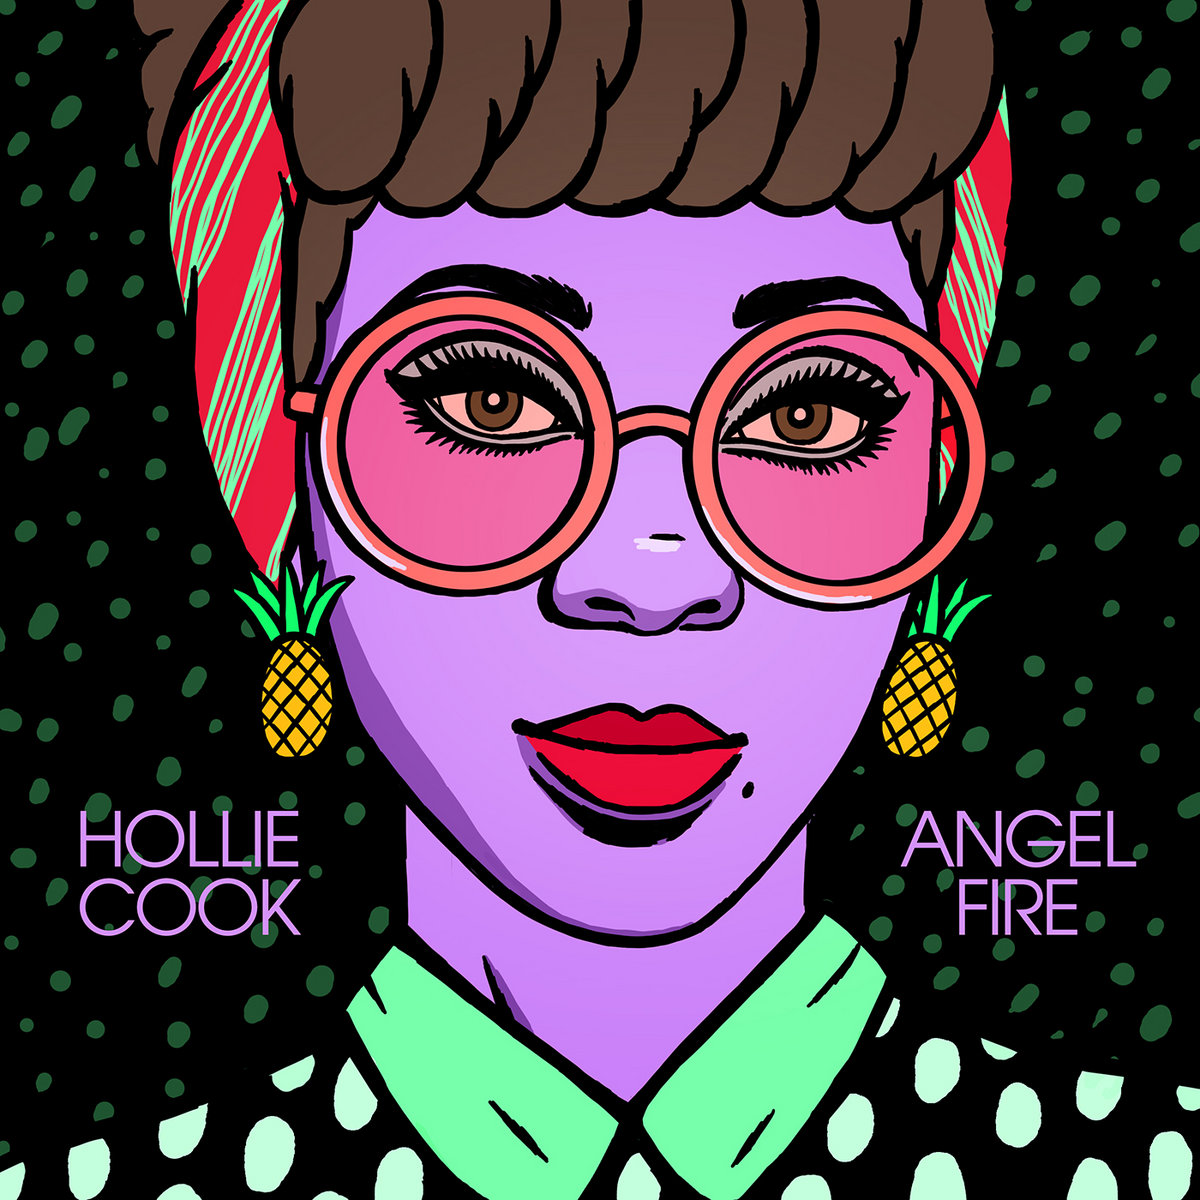 Angel Fire Hollie Cook